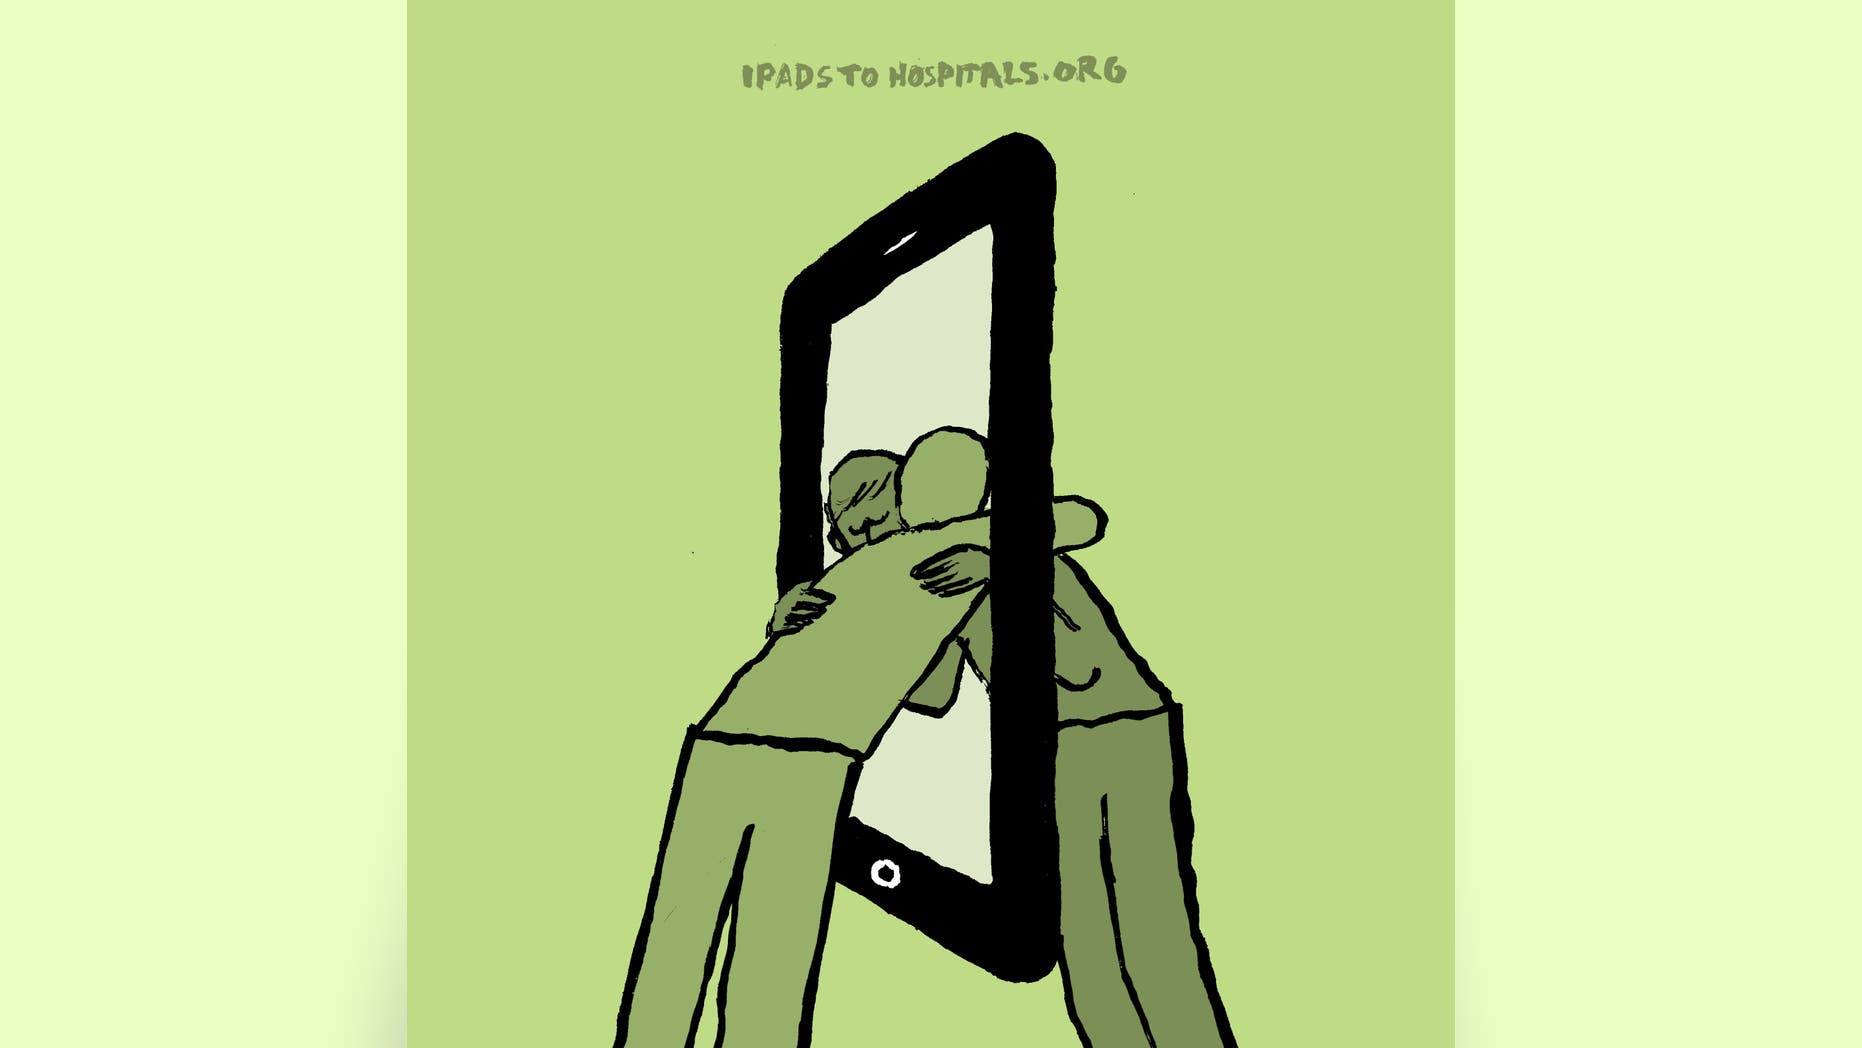 This illustration by French artist Jean Jullien, released by Jullien to Fox News, was created to spotlight the work of iPads to Hospitals, a volunteer group that collects used tablets and donates them to hospitals and nursing homes in underserved communities.